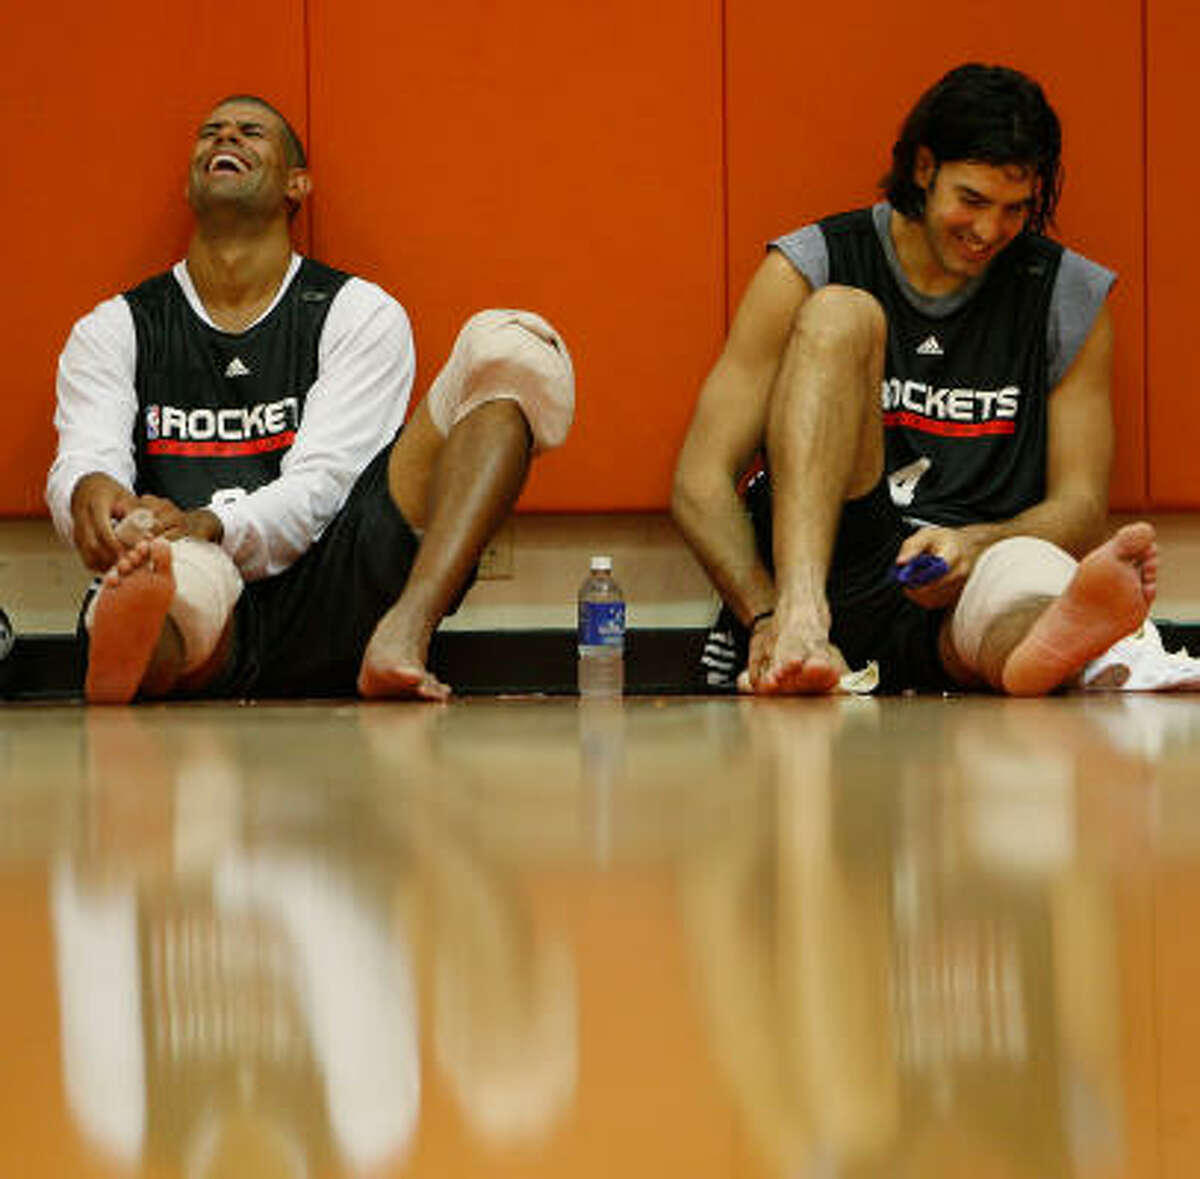 Rockets forward Shane Battier, left, shot 120 consecutive free throws after Sunday's practice to break a personal record.